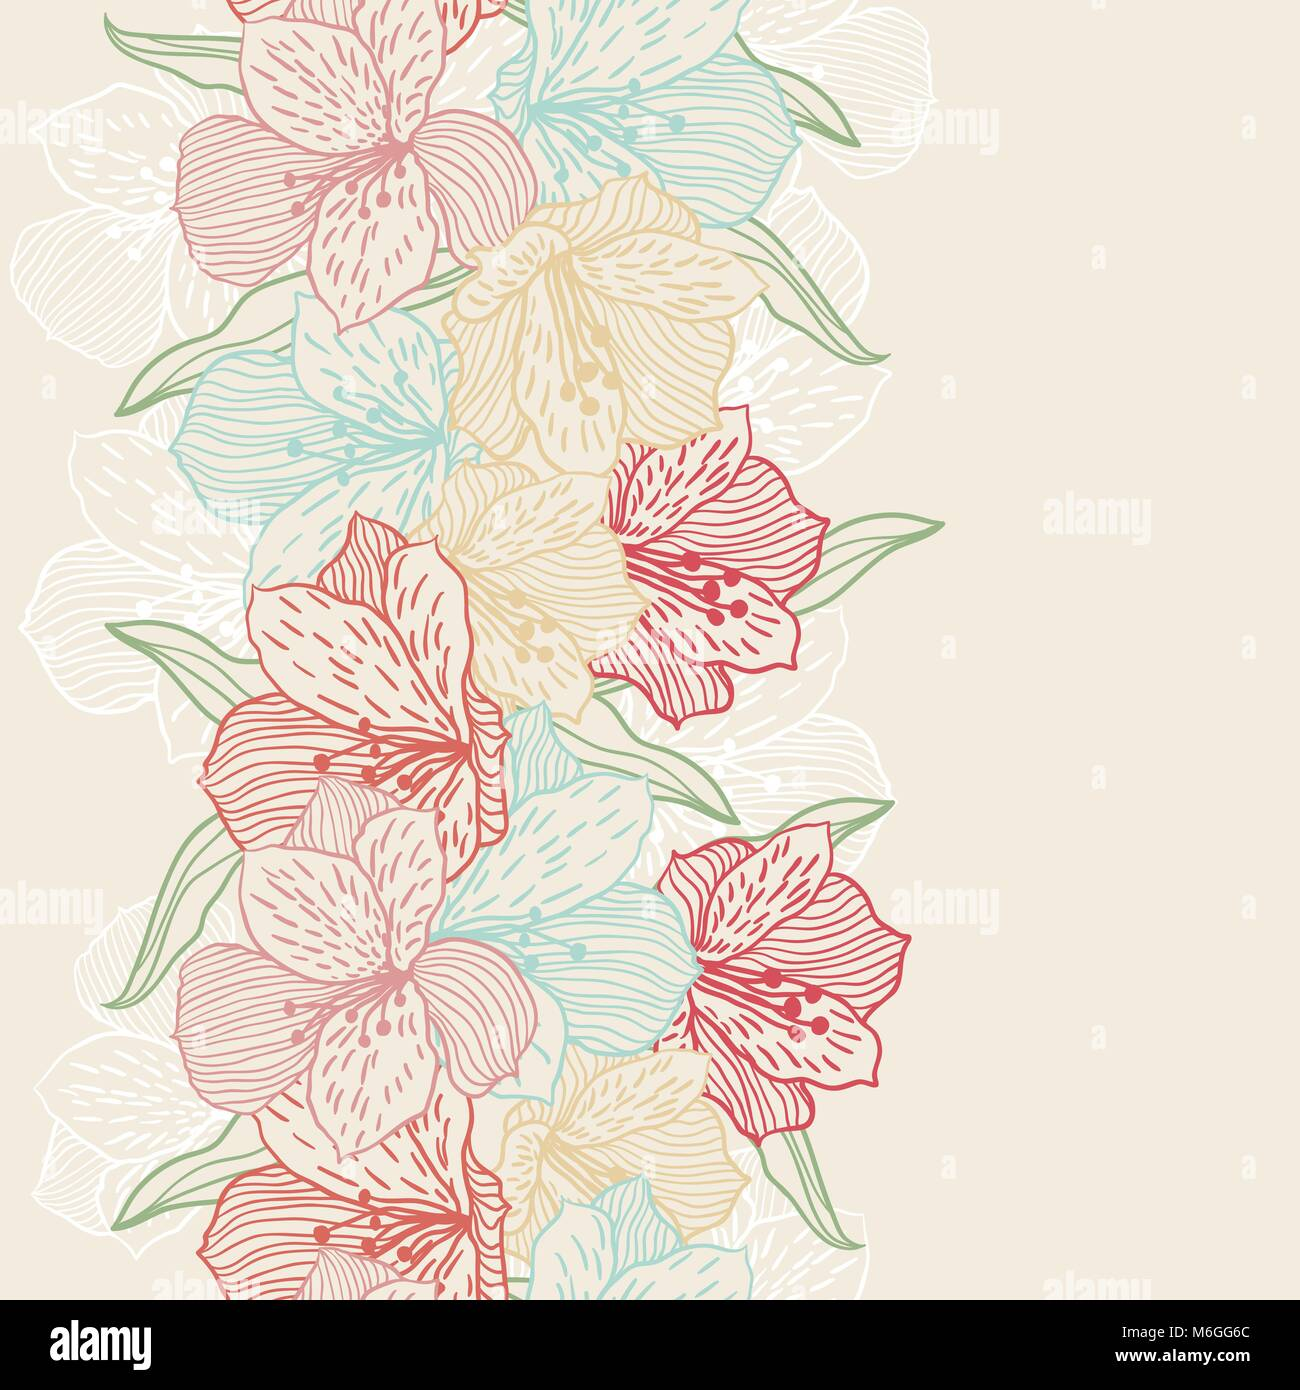 Abstract vintage seamless flower pattern with orchid - Stock Image